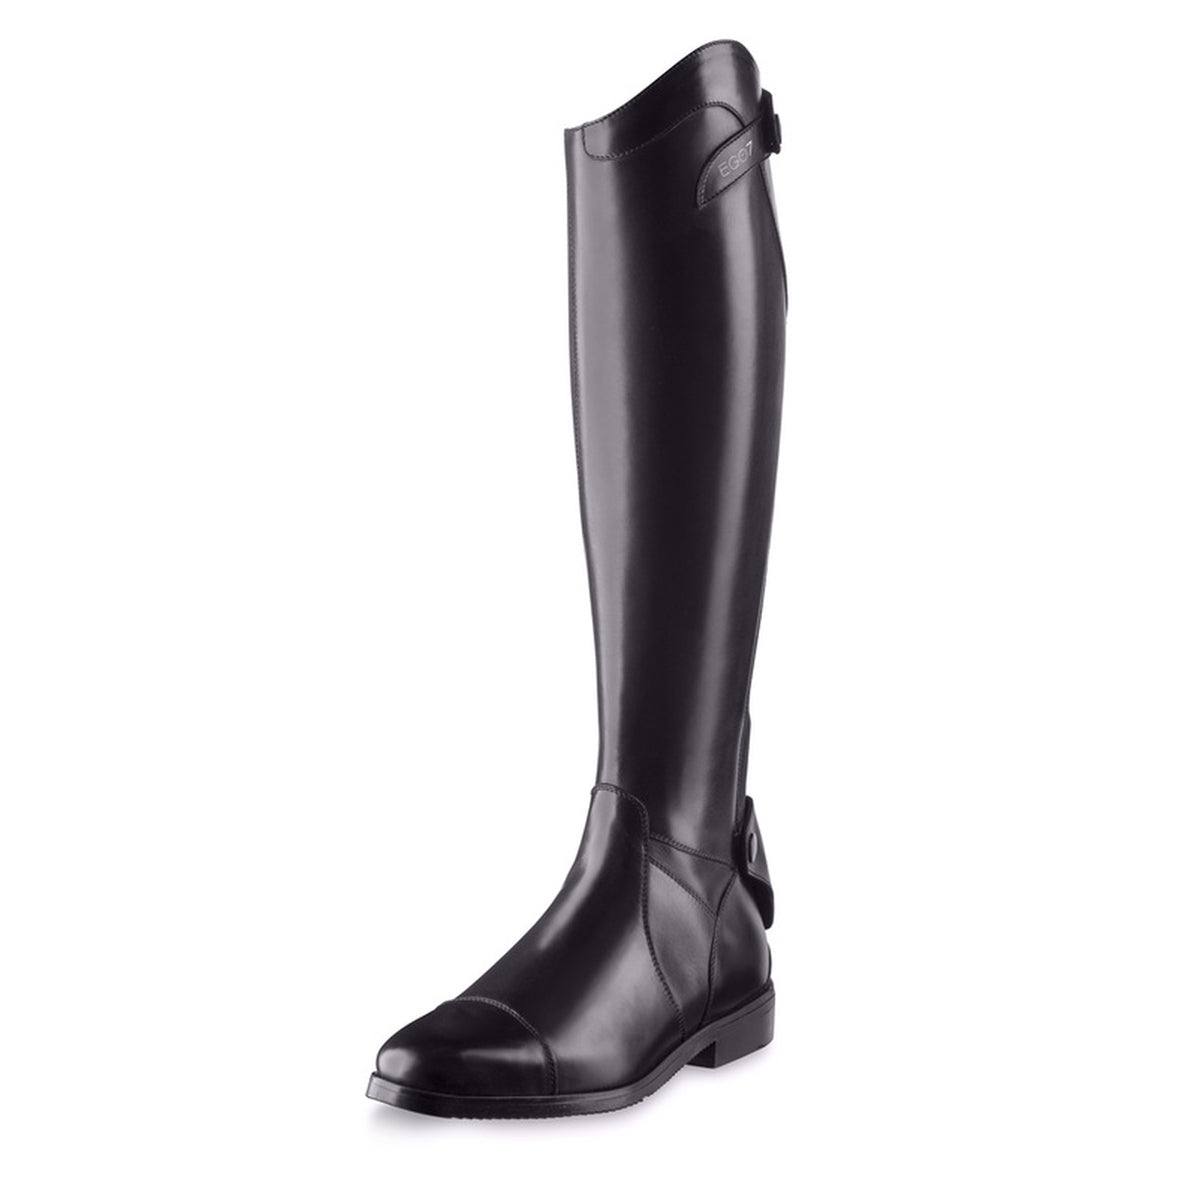 EGO 7 Aries Dress Boots